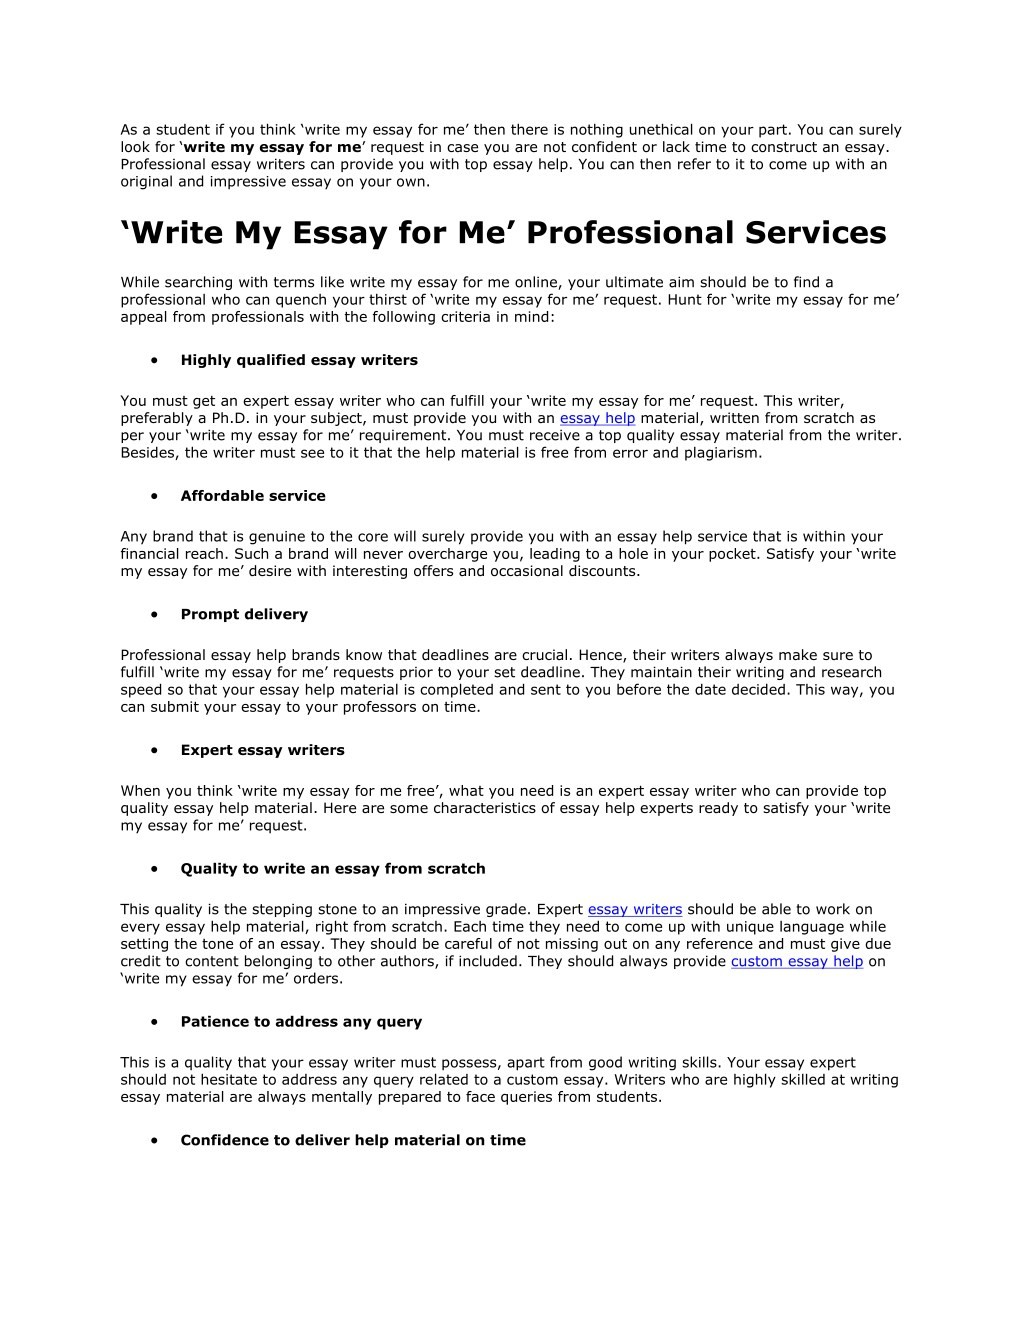 017 Write My Essay For Me Example As Student If You Think Surprising Free Canada Online Large